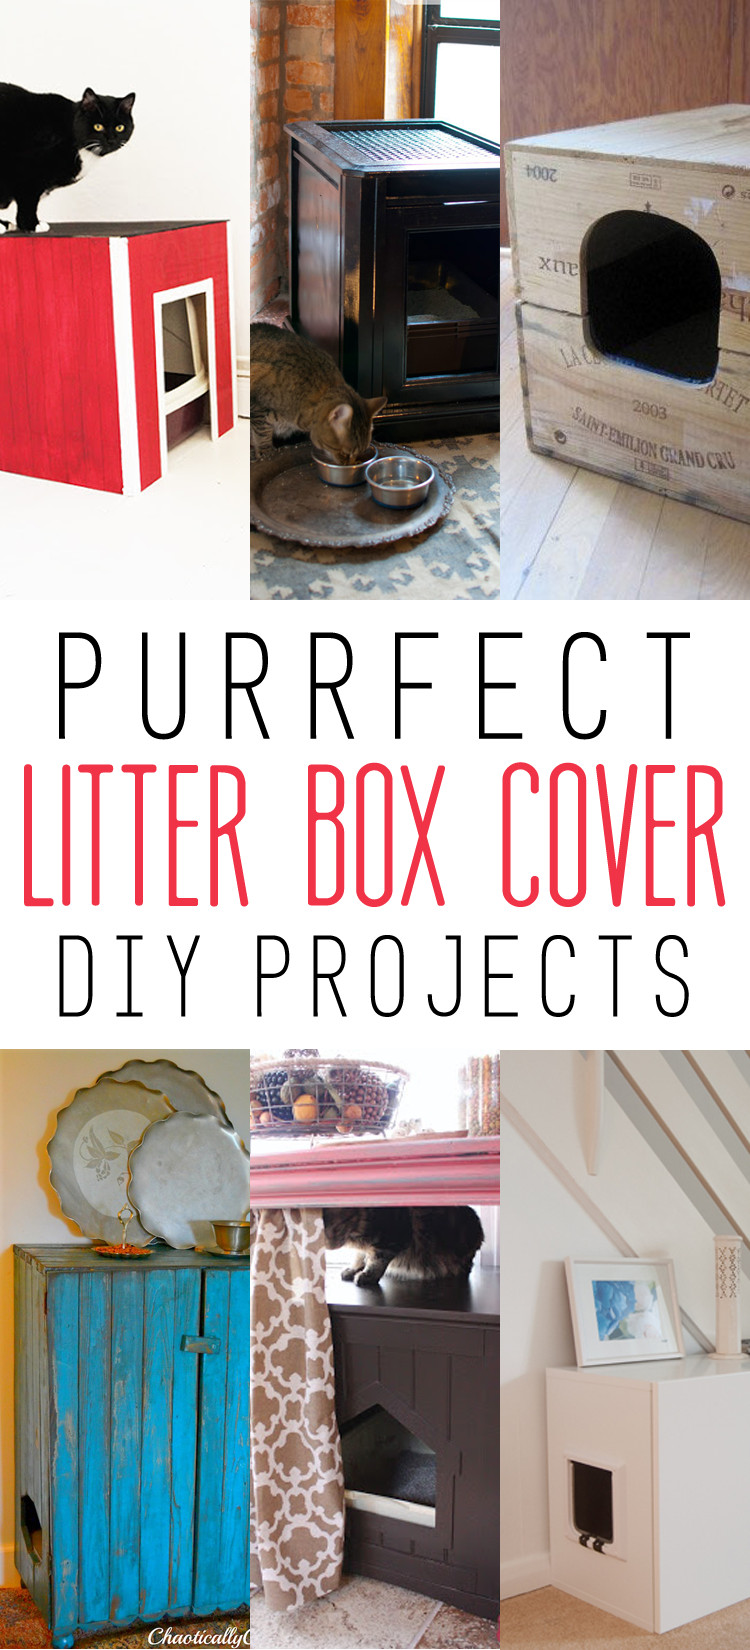 DIY Cat Litter Box Cover  Purrfect Litter Box Cover DIY Projects